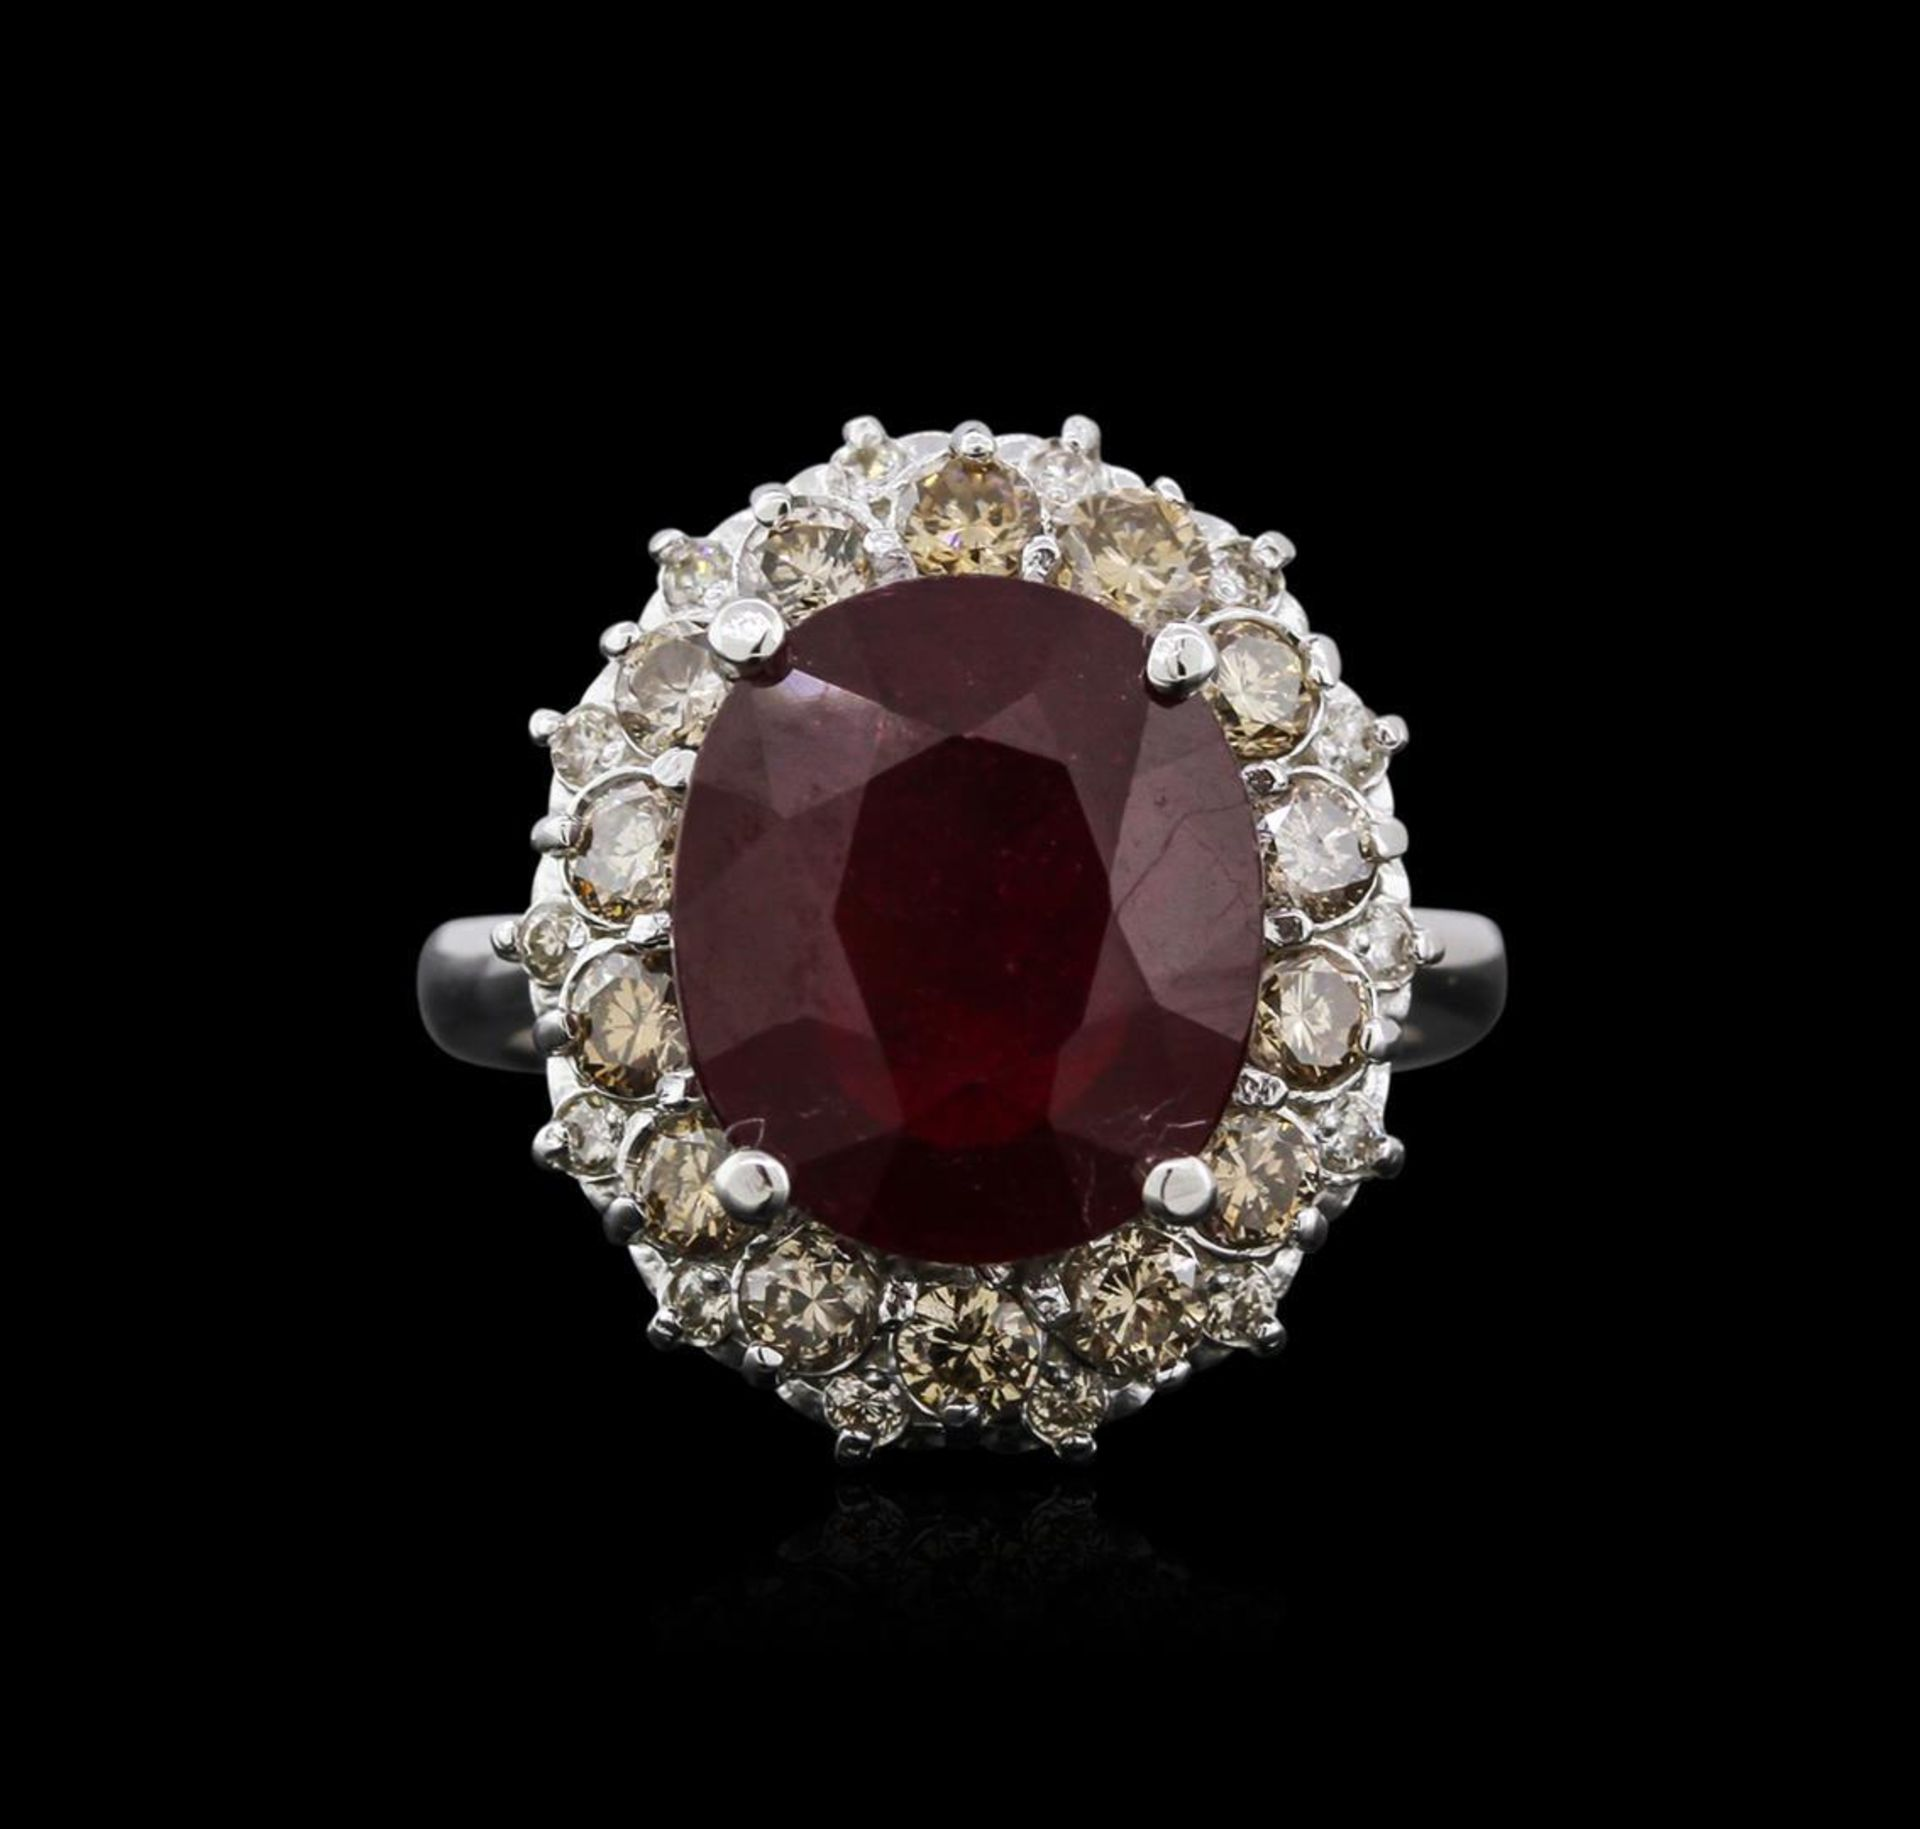 14KT White Gold 6.16 ctw Ruby and Diamond Ring - Image 2 of 4